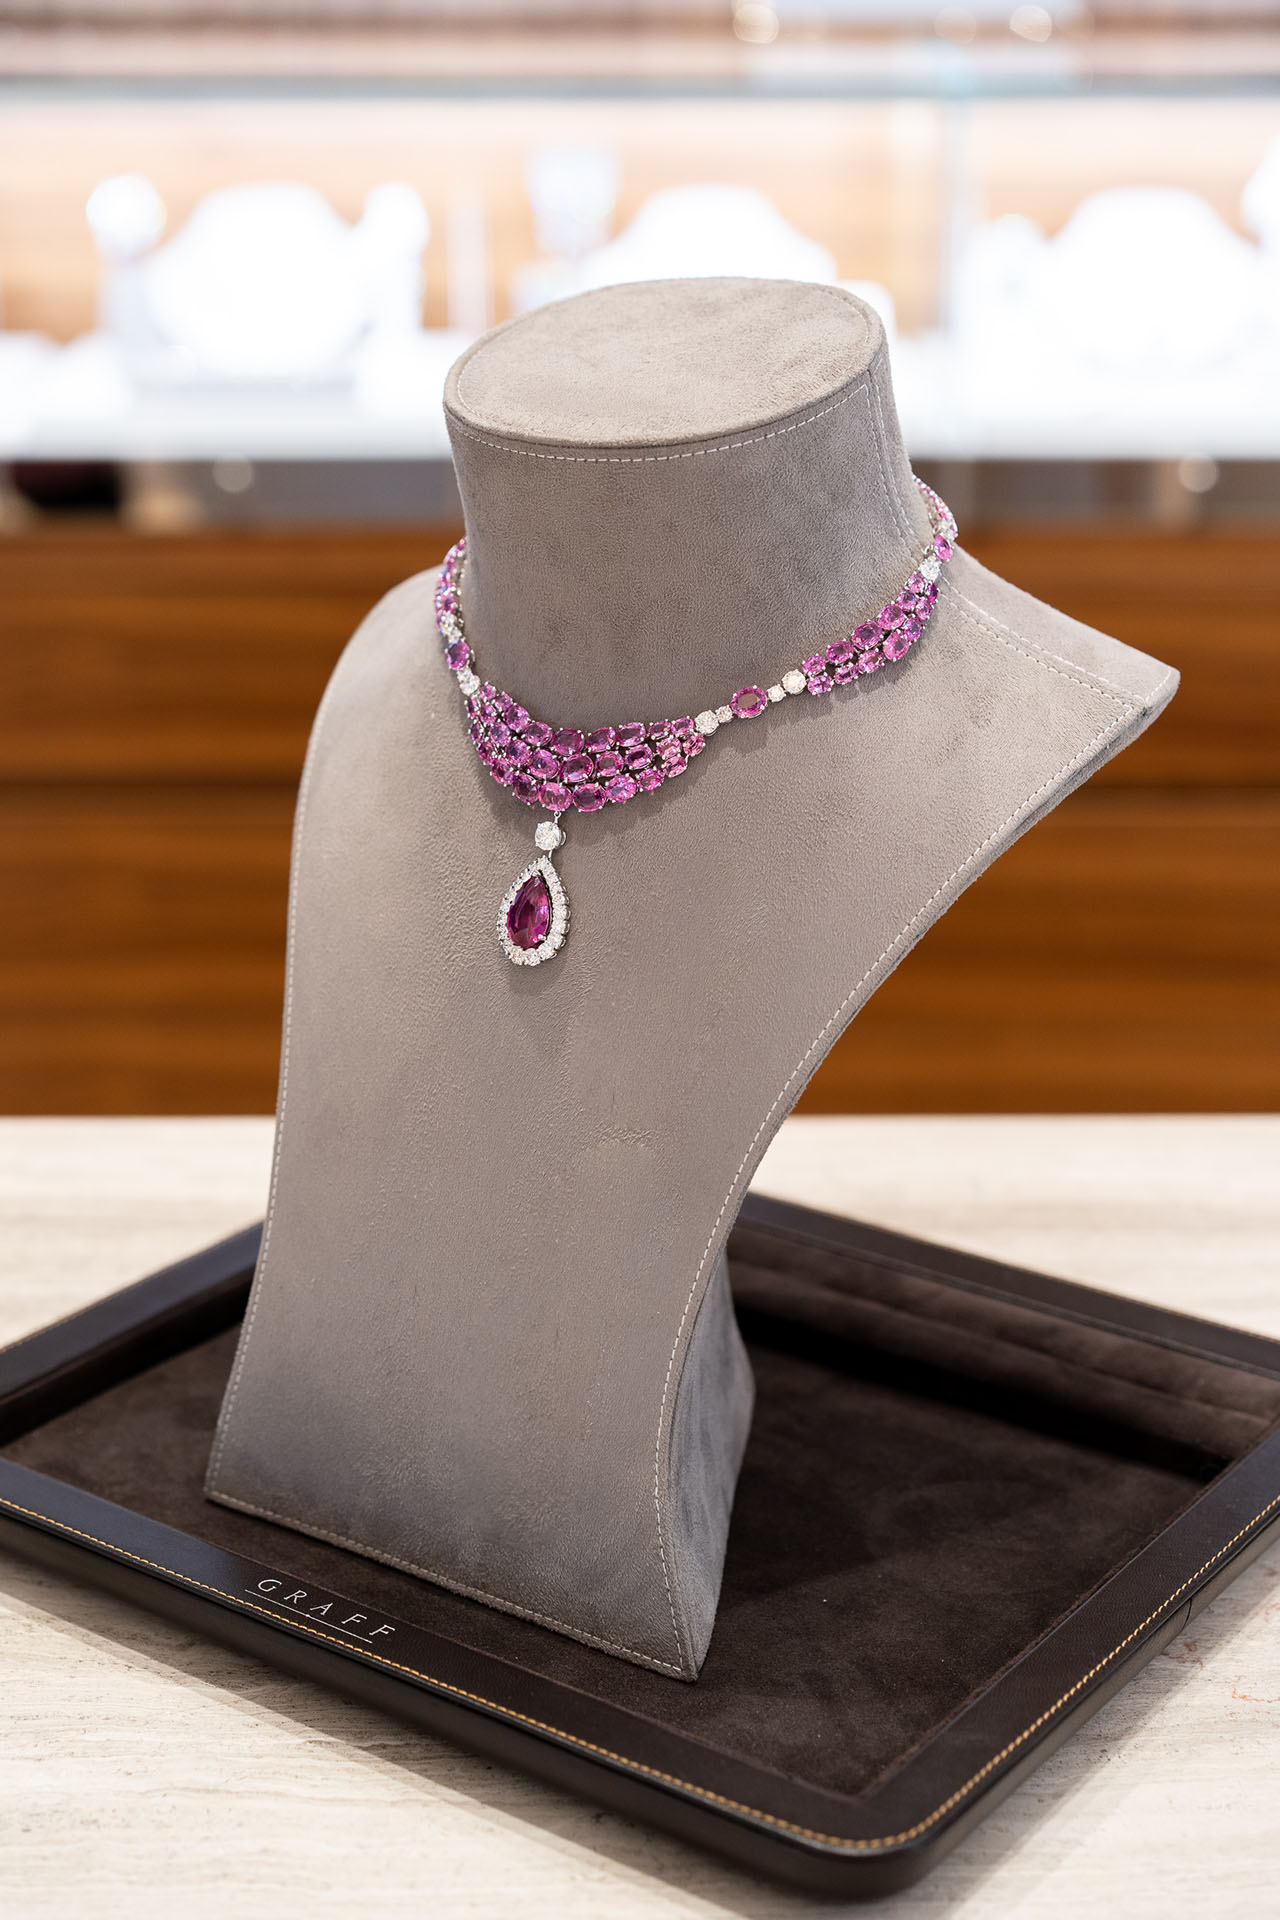 An exquisite design made of rare pink diamonds with detachable pendant.